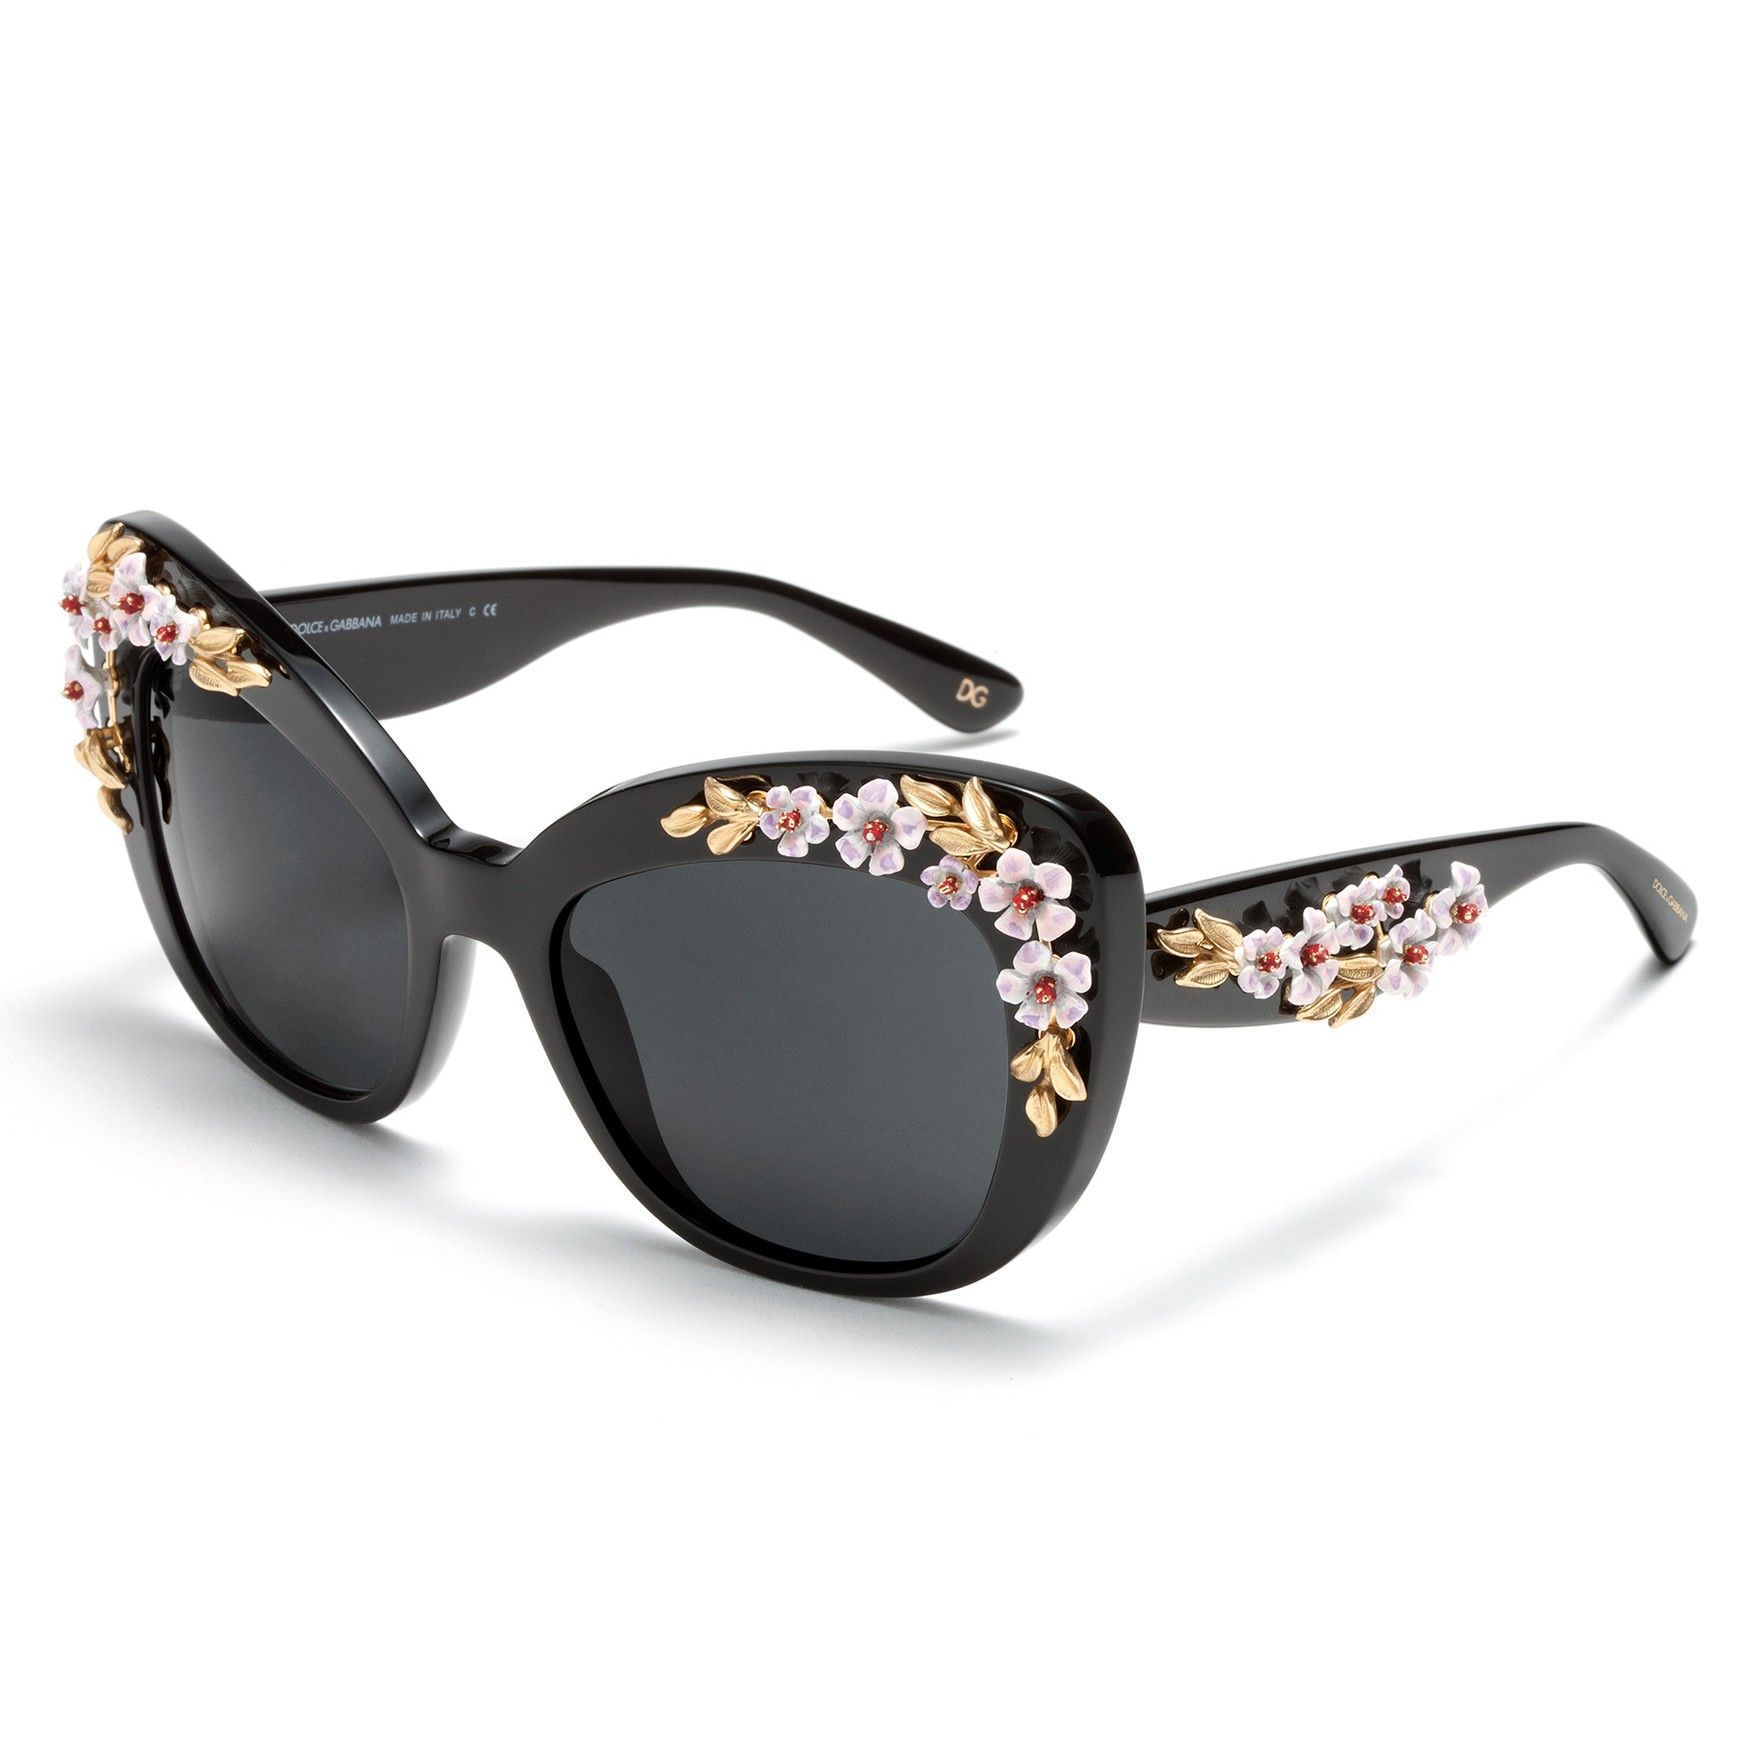 6bef01ef2752c DOLCE   GABBANA DG4230 501 87 LIMITED EDITION ALMOND FLOWERS ...